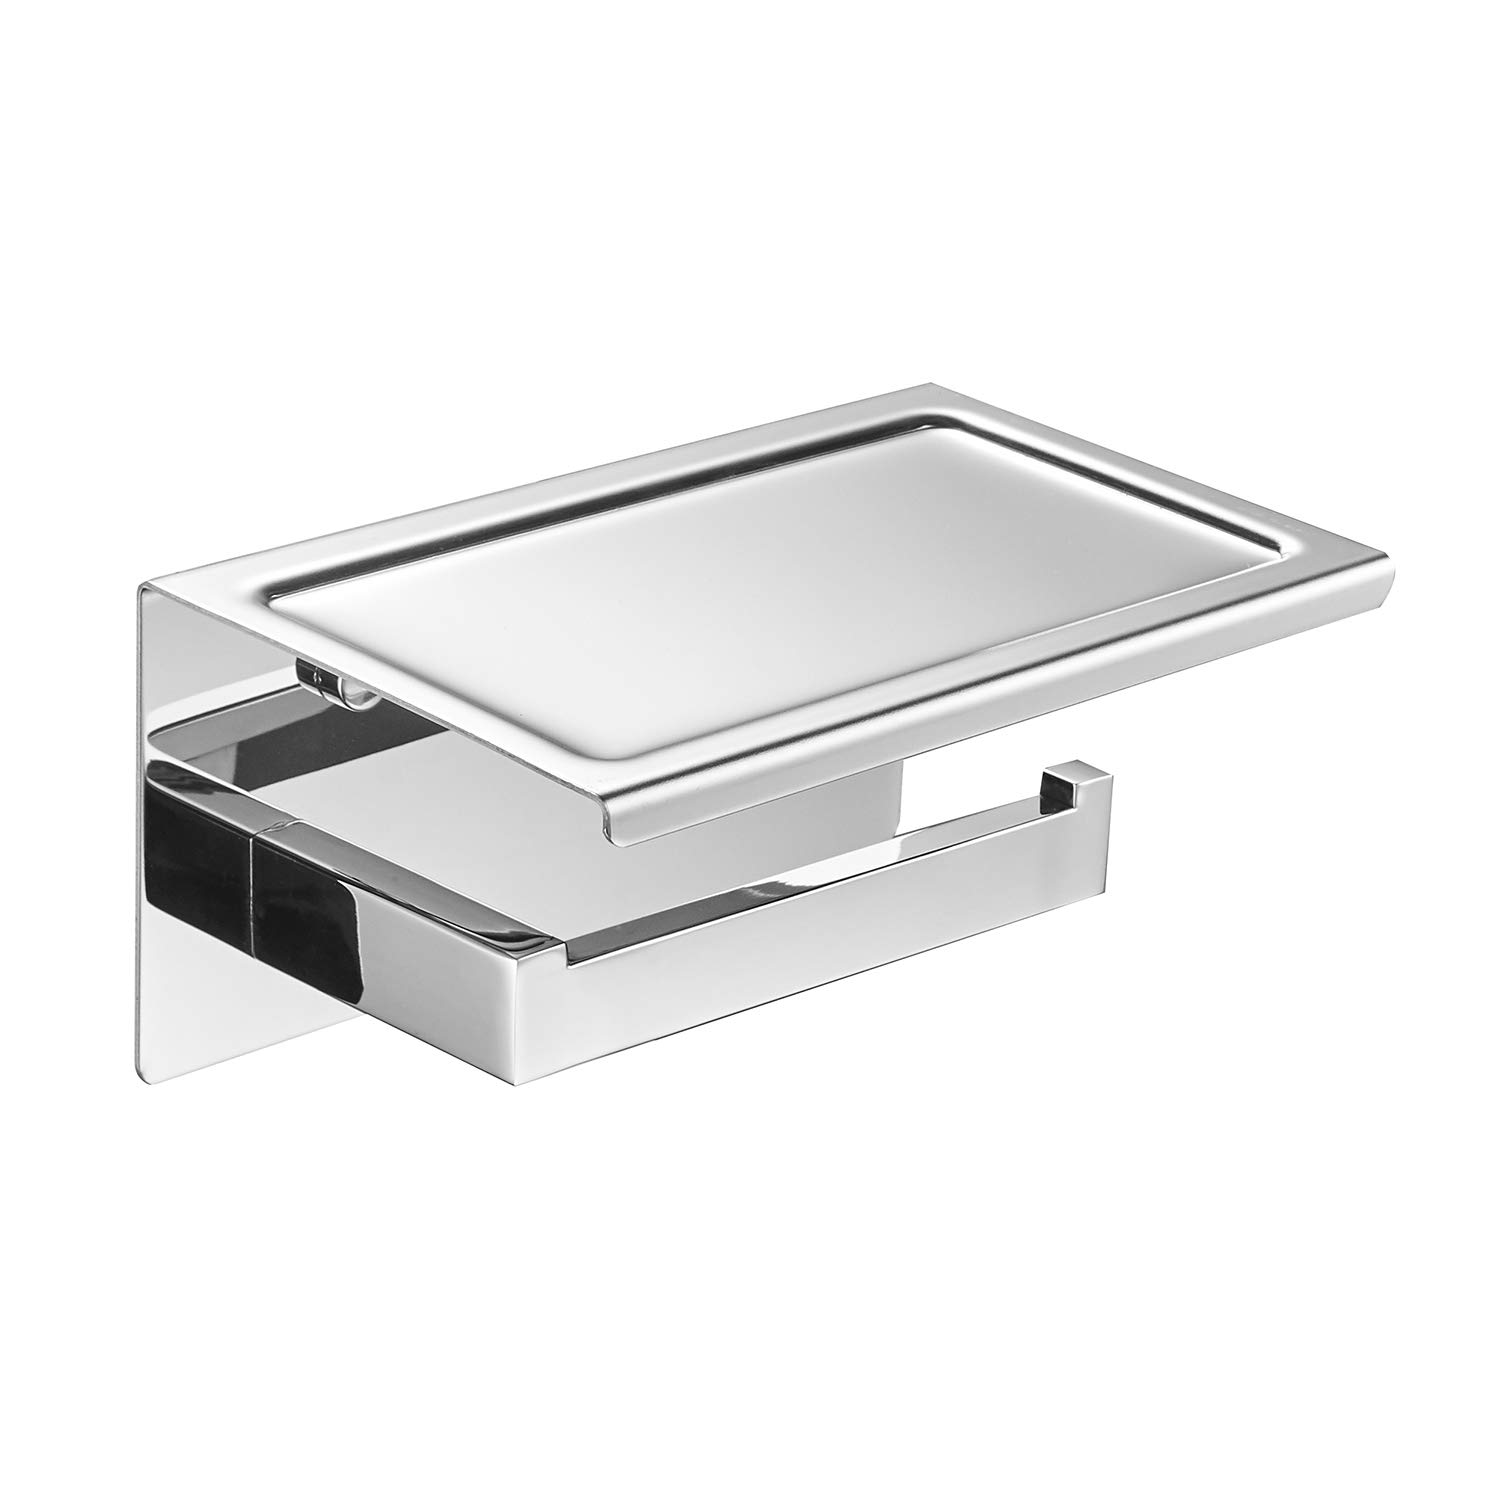 POKIM Toilet Paper Holder with Phone Shelf Polished Chrome, SUS 304 Stainless Steel Bathroom Accessories Tissue Roll Dispenser Storage Wall Mounted